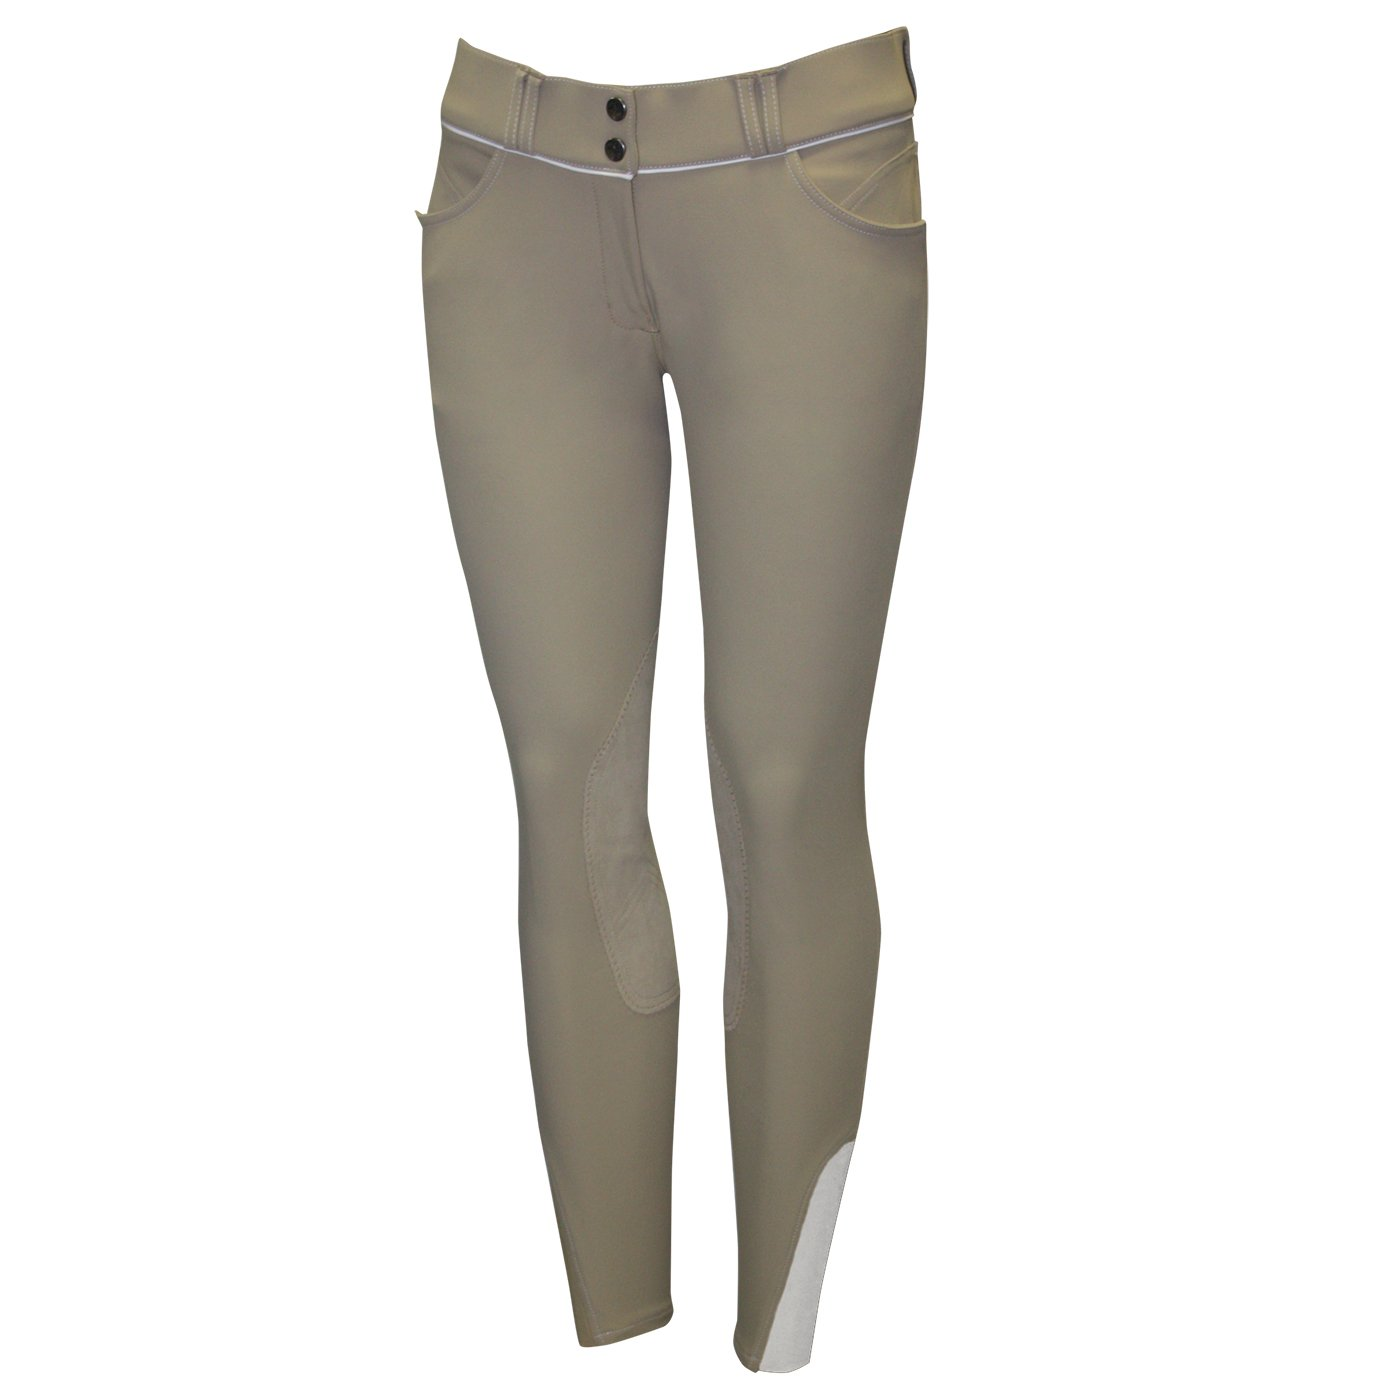 drc7453 drc7453 Ladies ElationプラチナBrooklyn TAN Breeches TAN Ladies B01HIWNHNE Parent, 金沢区:729d98cb --- m2cweb.com